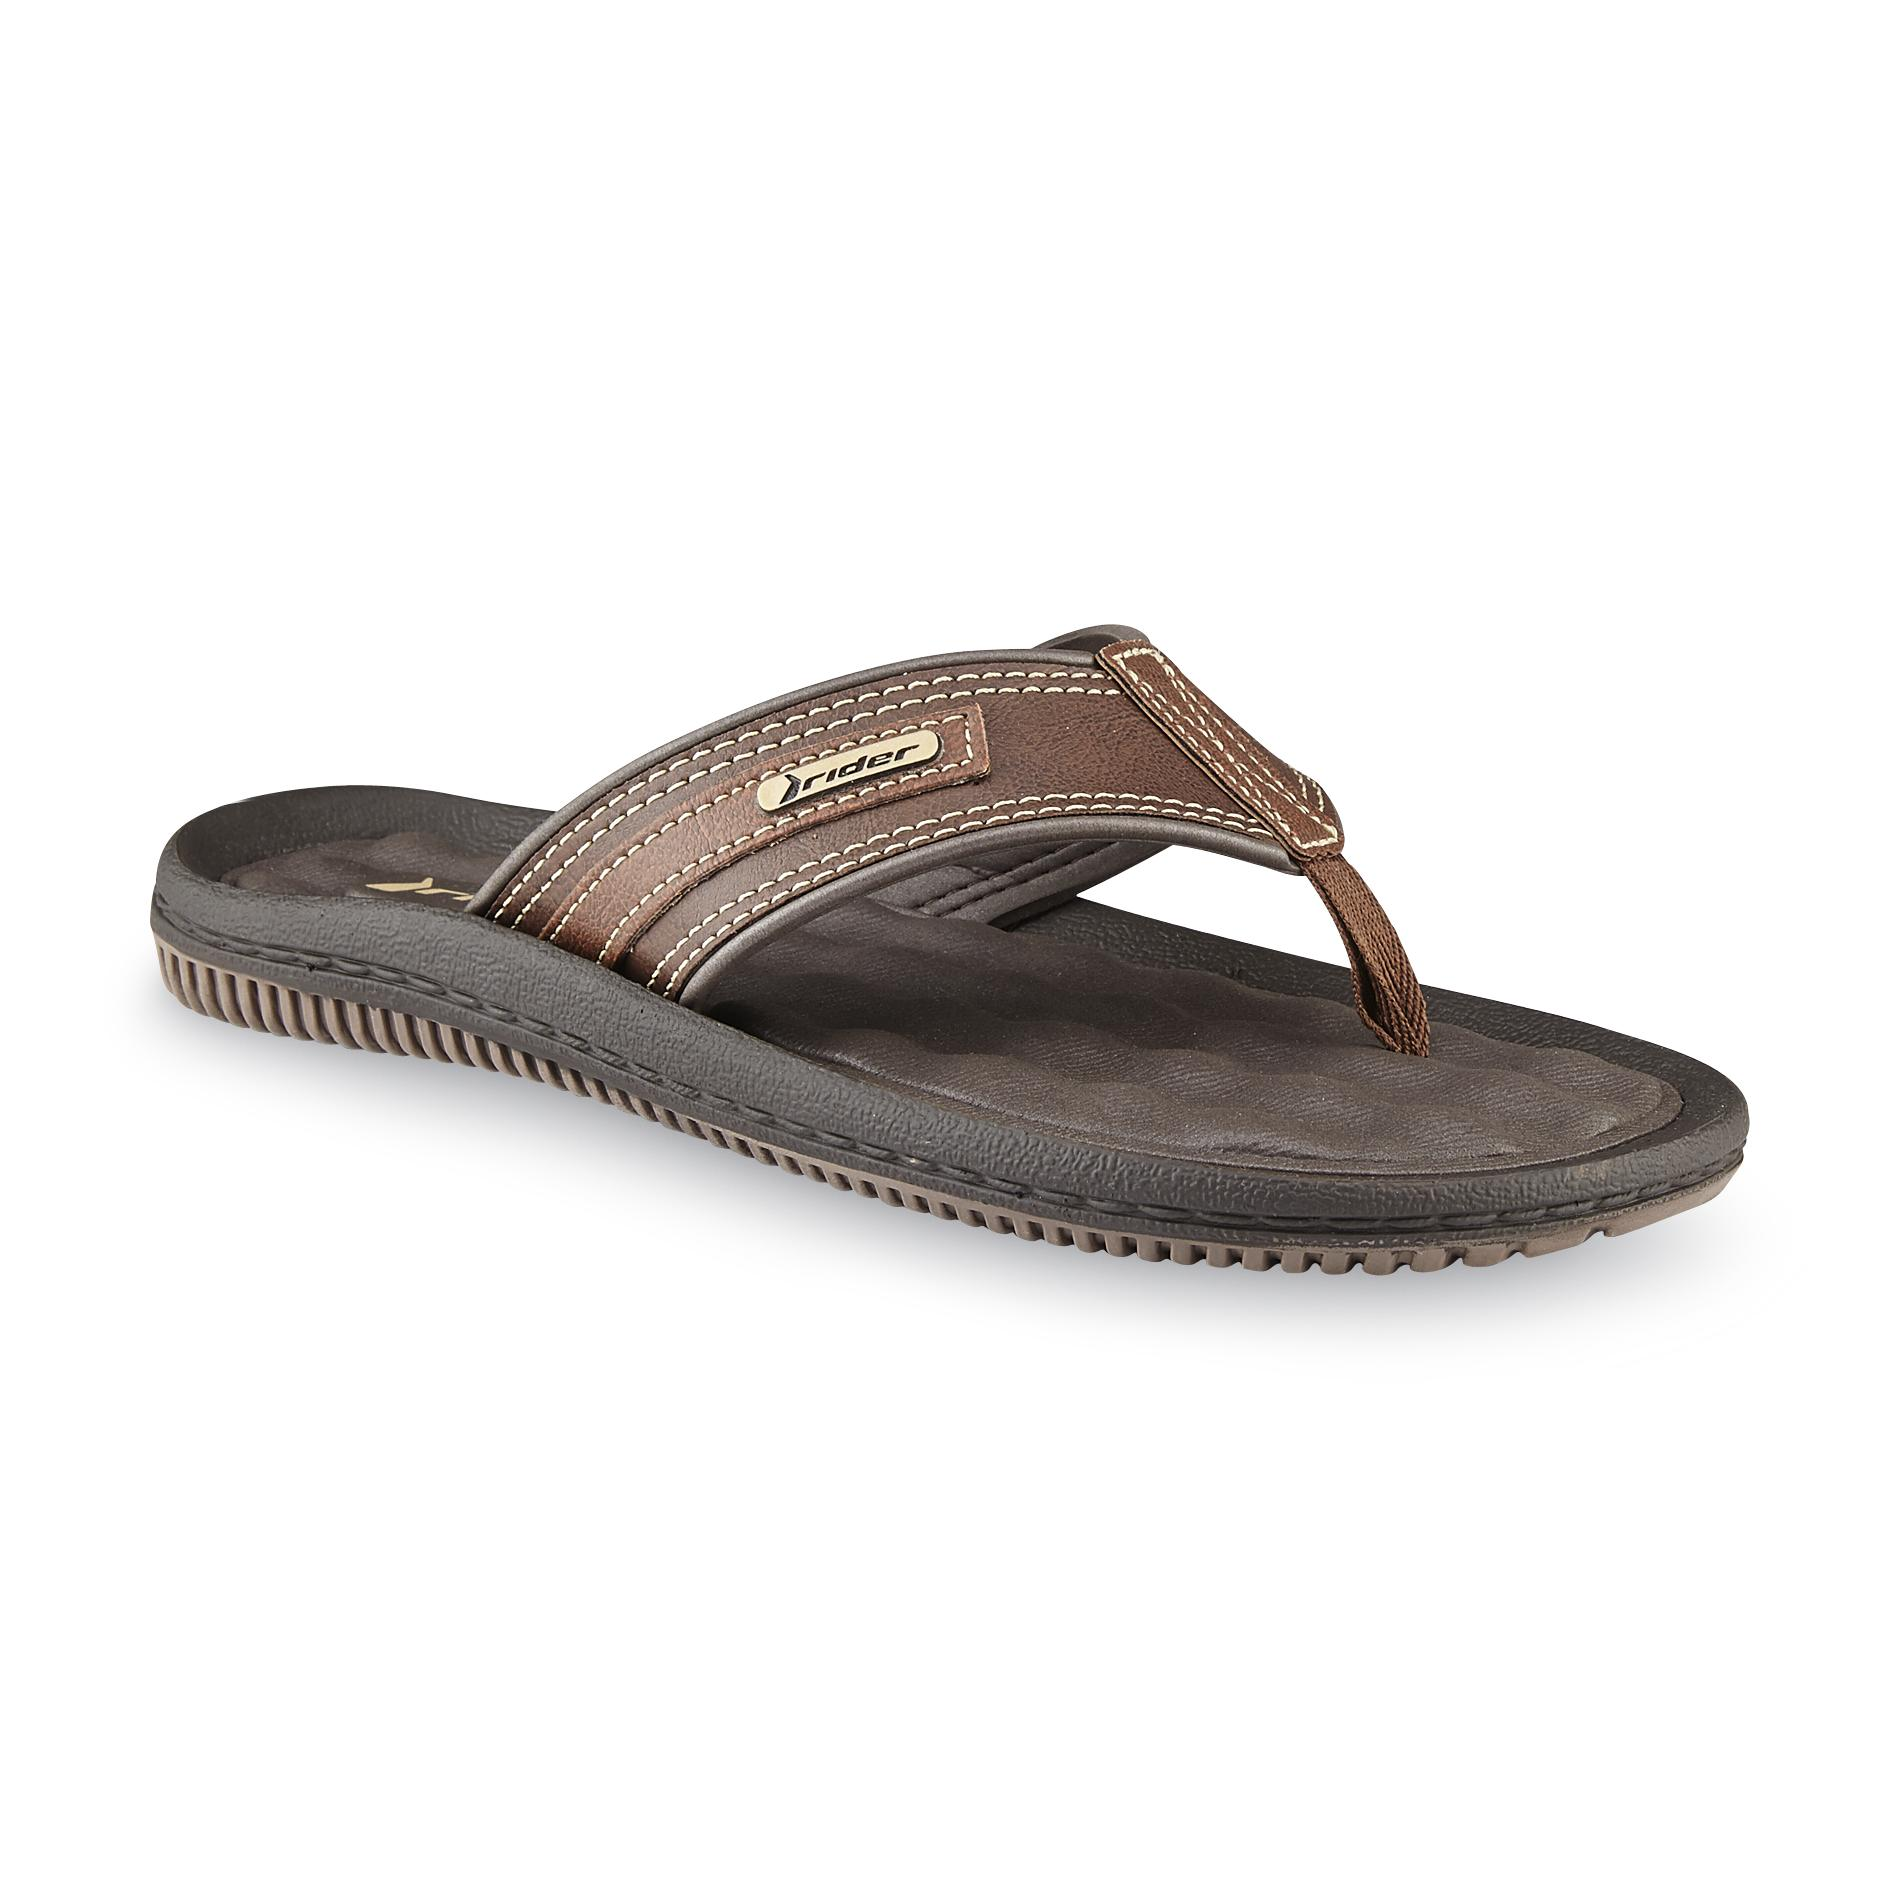 Riders Sandals Men's Dunas II Brown Flip-Flop